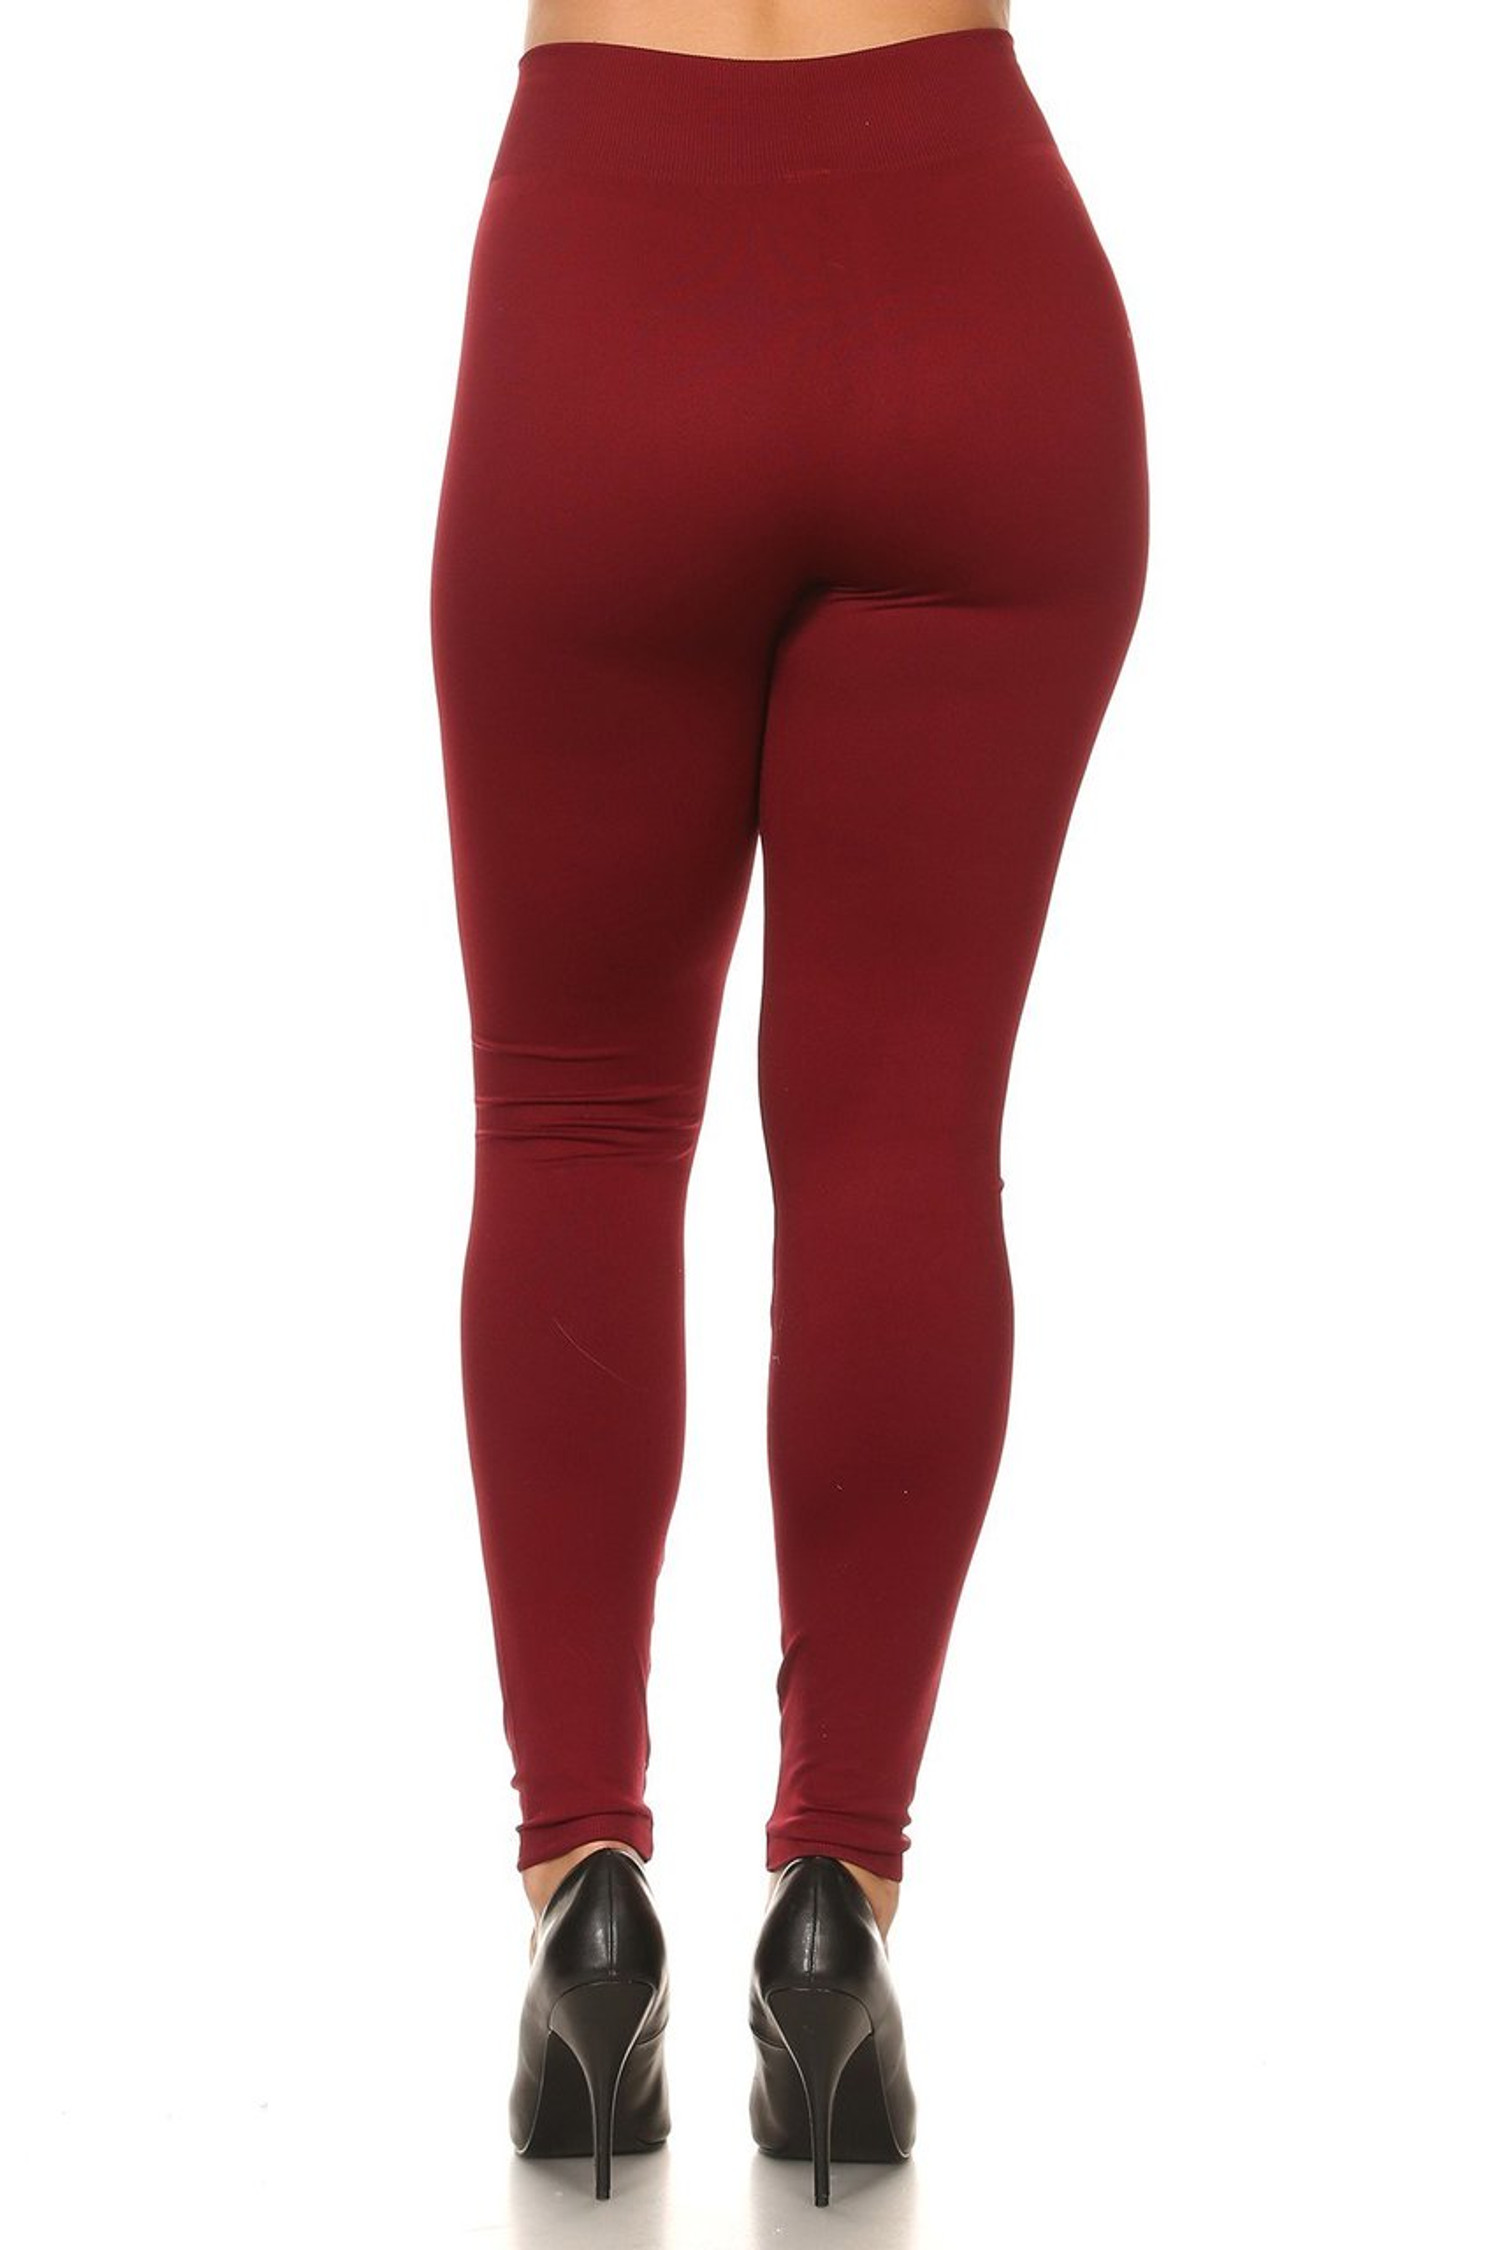 Back side image of Extra Thick Solid Basic Plus Size Leggings